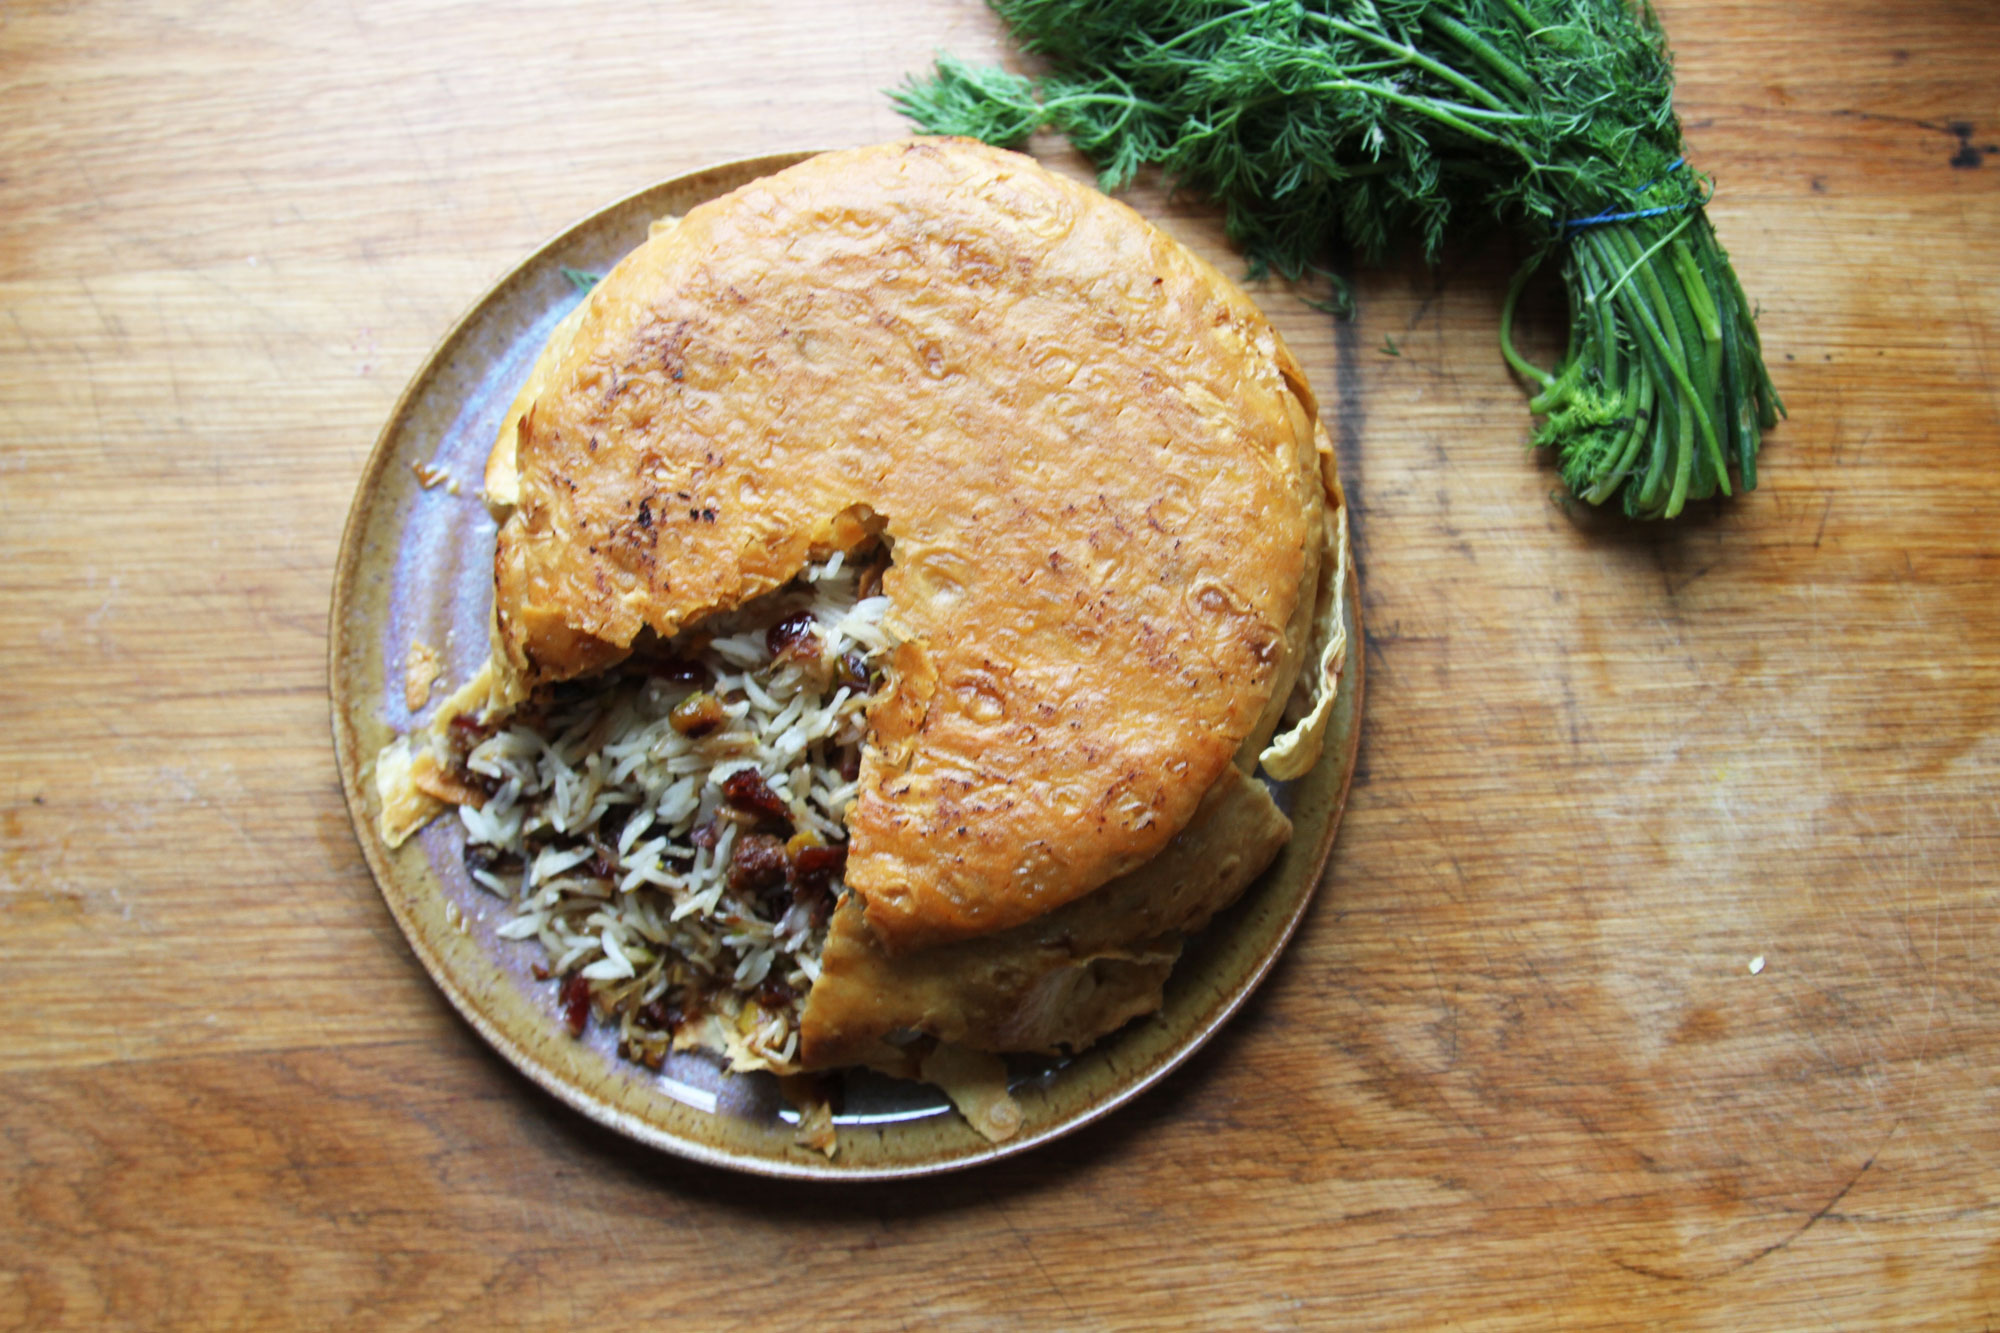 Abkhazian cuisine: features and recipes